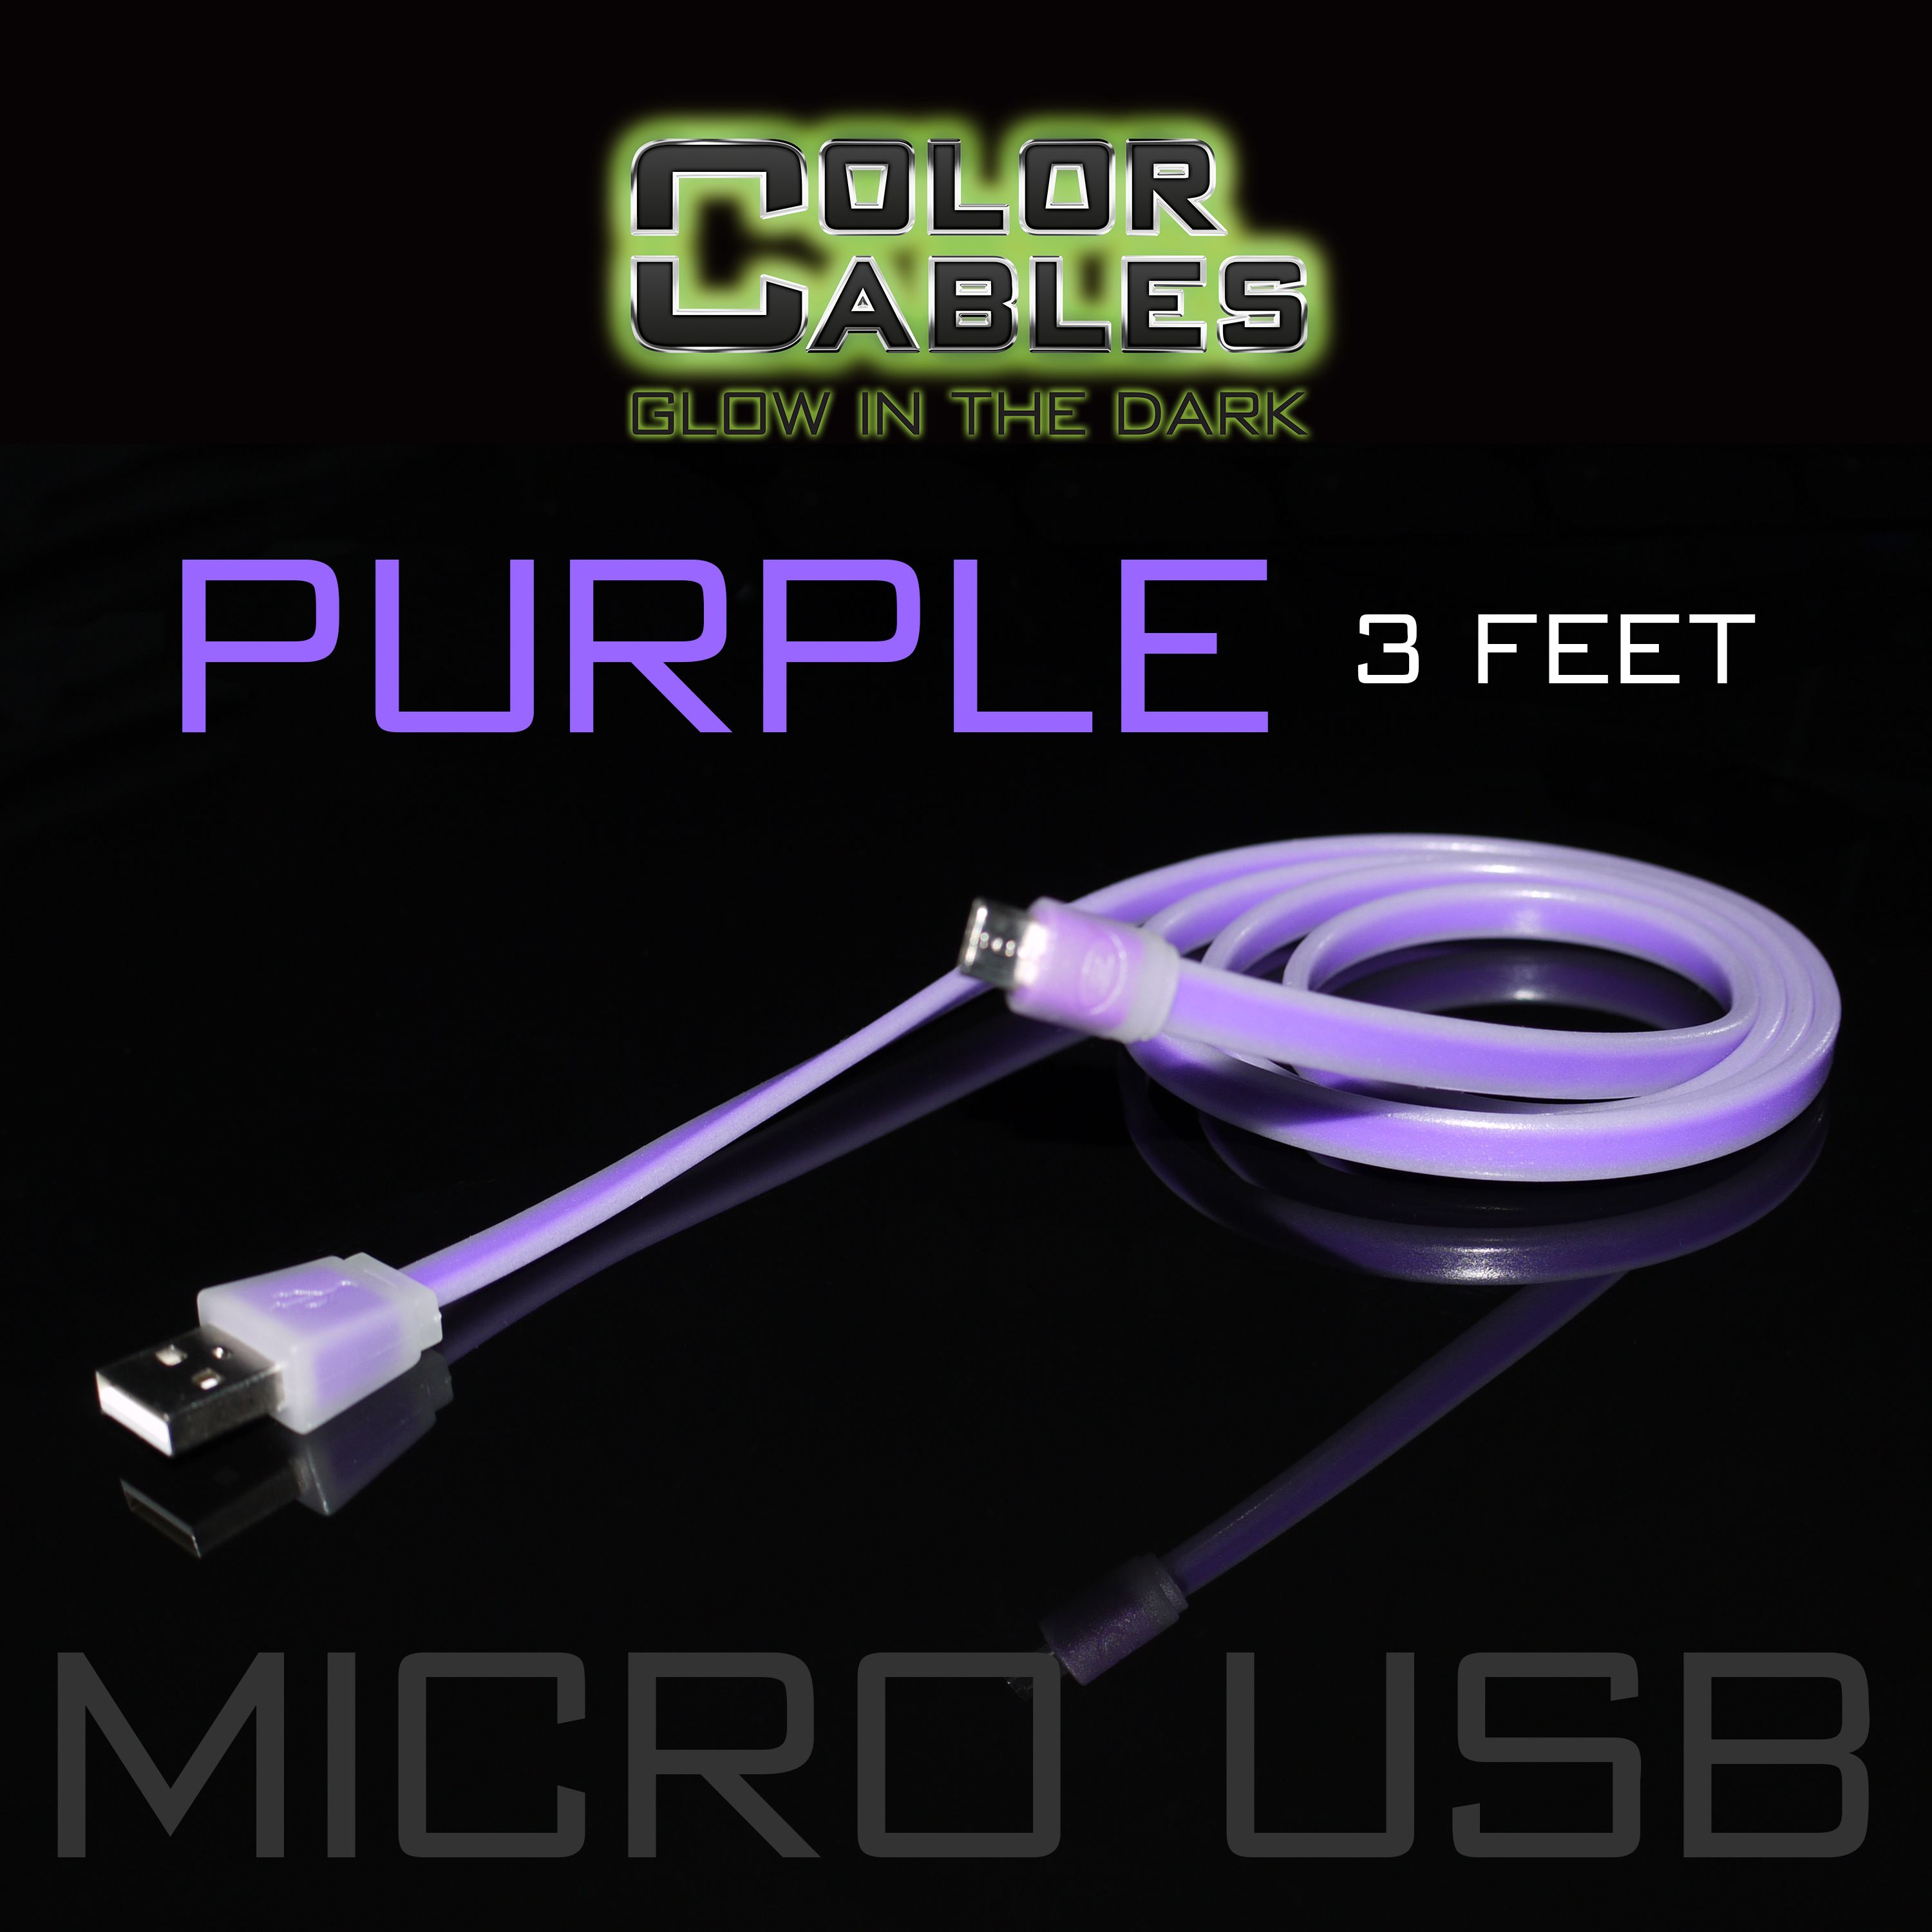 Glow in the dark charge sync data cable by color cables